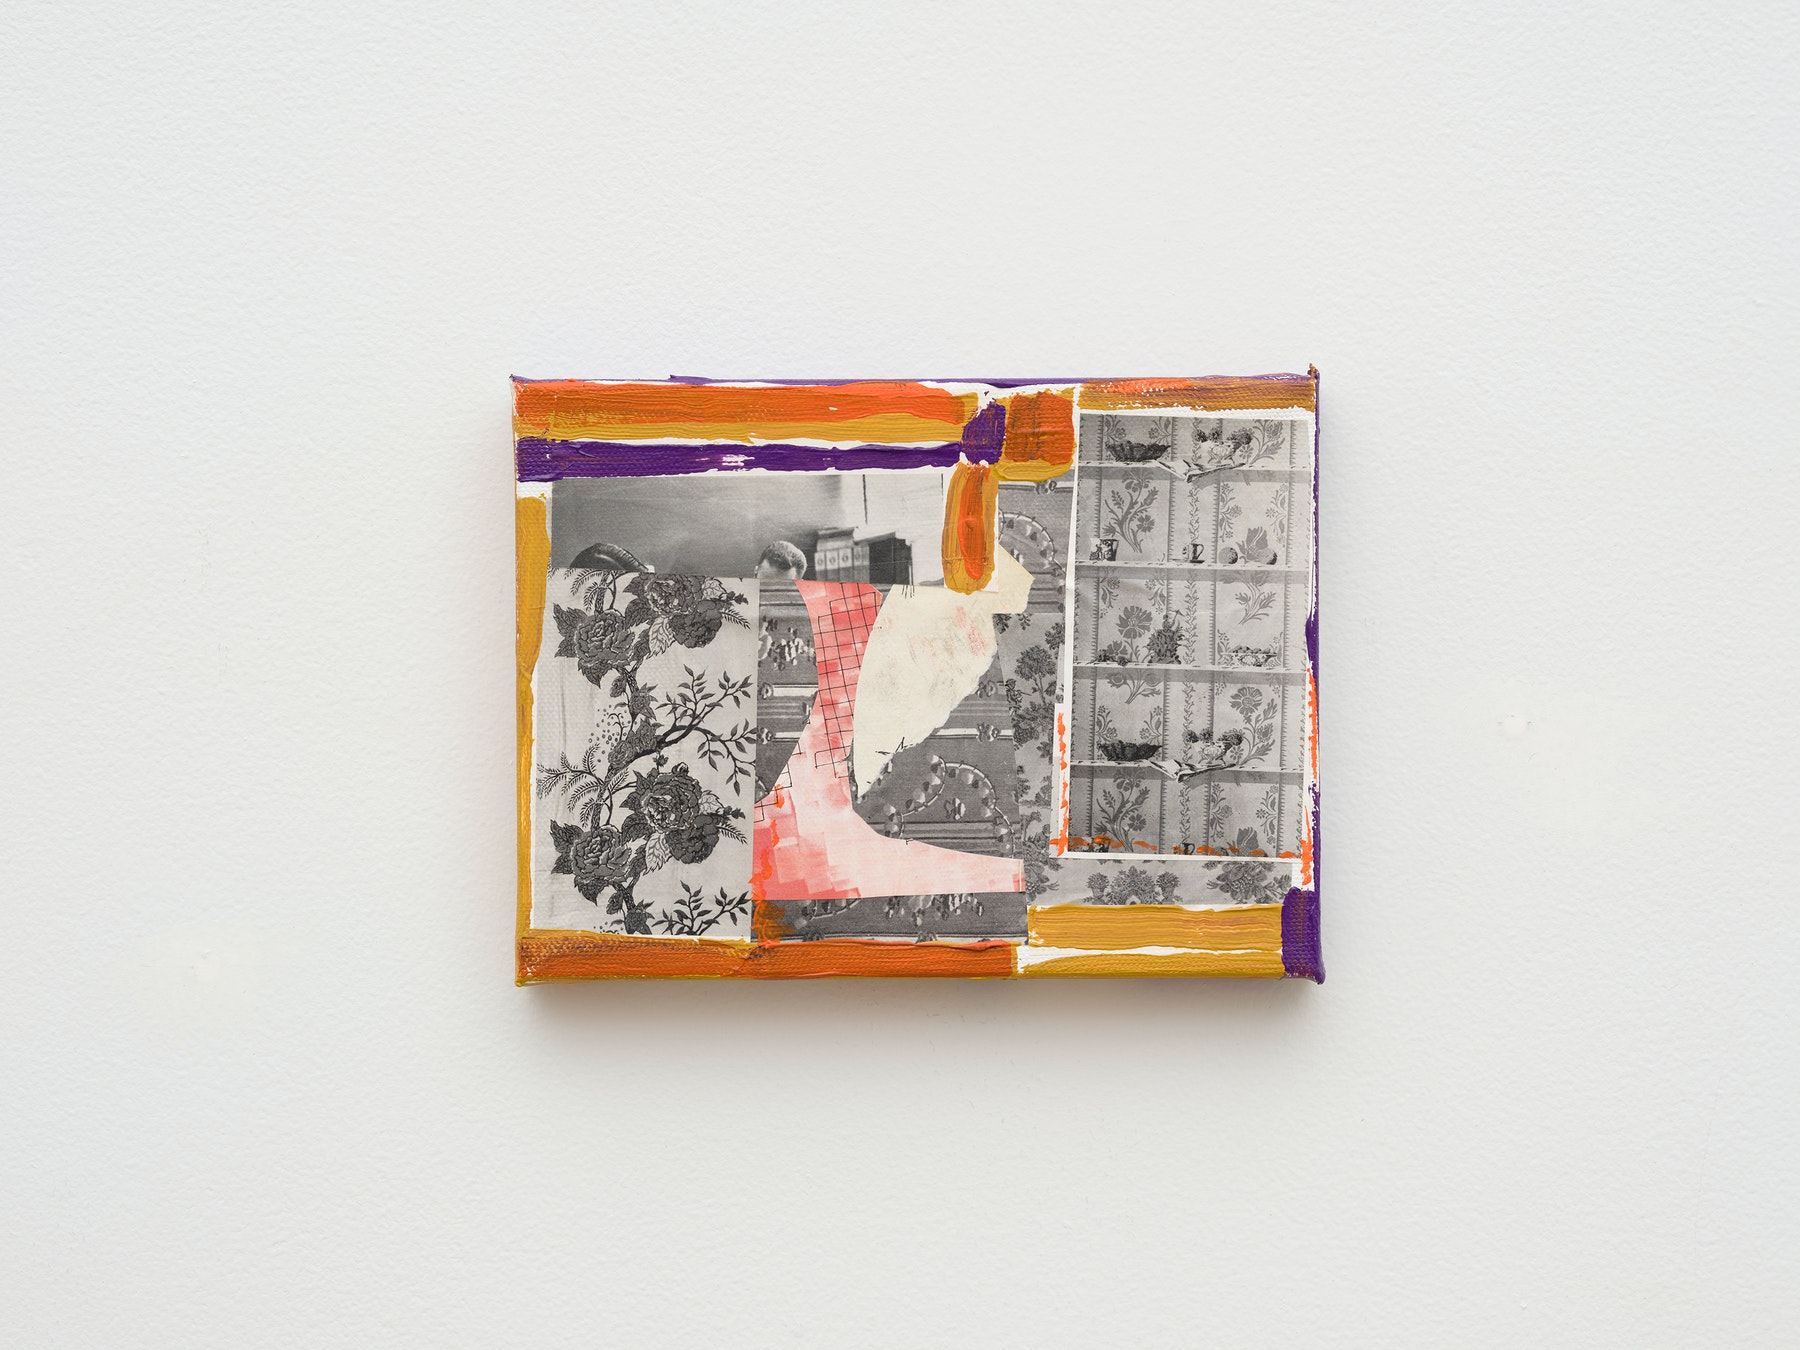 """Steve Roden """"eggs,"""" 2020 Mixed media on canvas 6"""" x 8"""" x 1"""" [HxWxD] (15.24 x 20.32 x 2.54 cm) Inventory #ROD686 Courtesy of the artist and Vielmetter Los Angeles Photo credit: Jeff McLane Signed and dated on the back"""